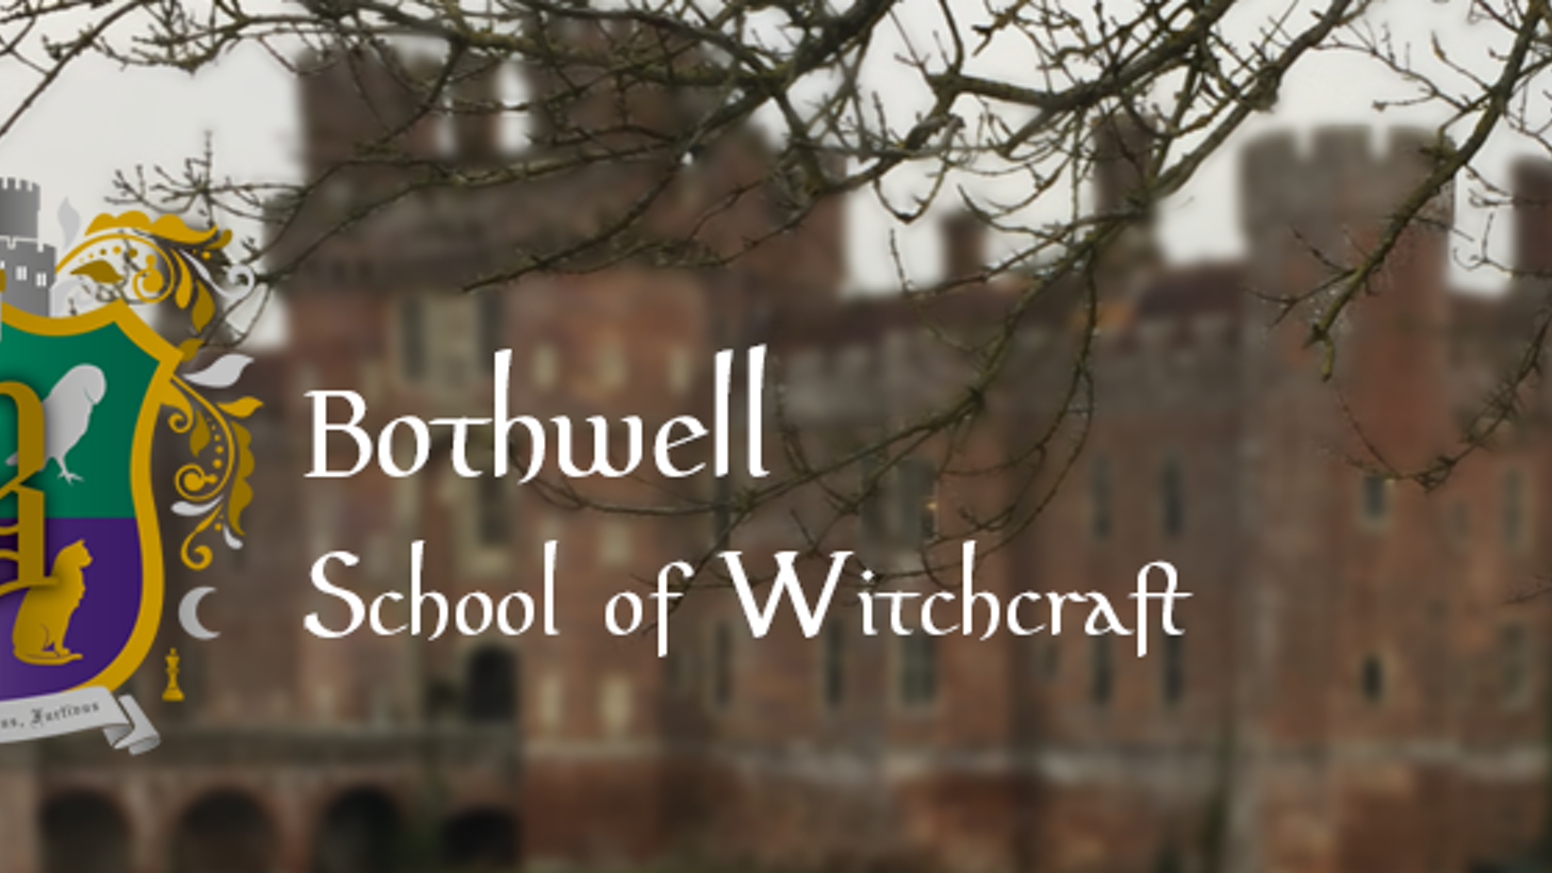 Bothwell School of Witchcraft, UK by Rogue Events Limited — Kickstarter